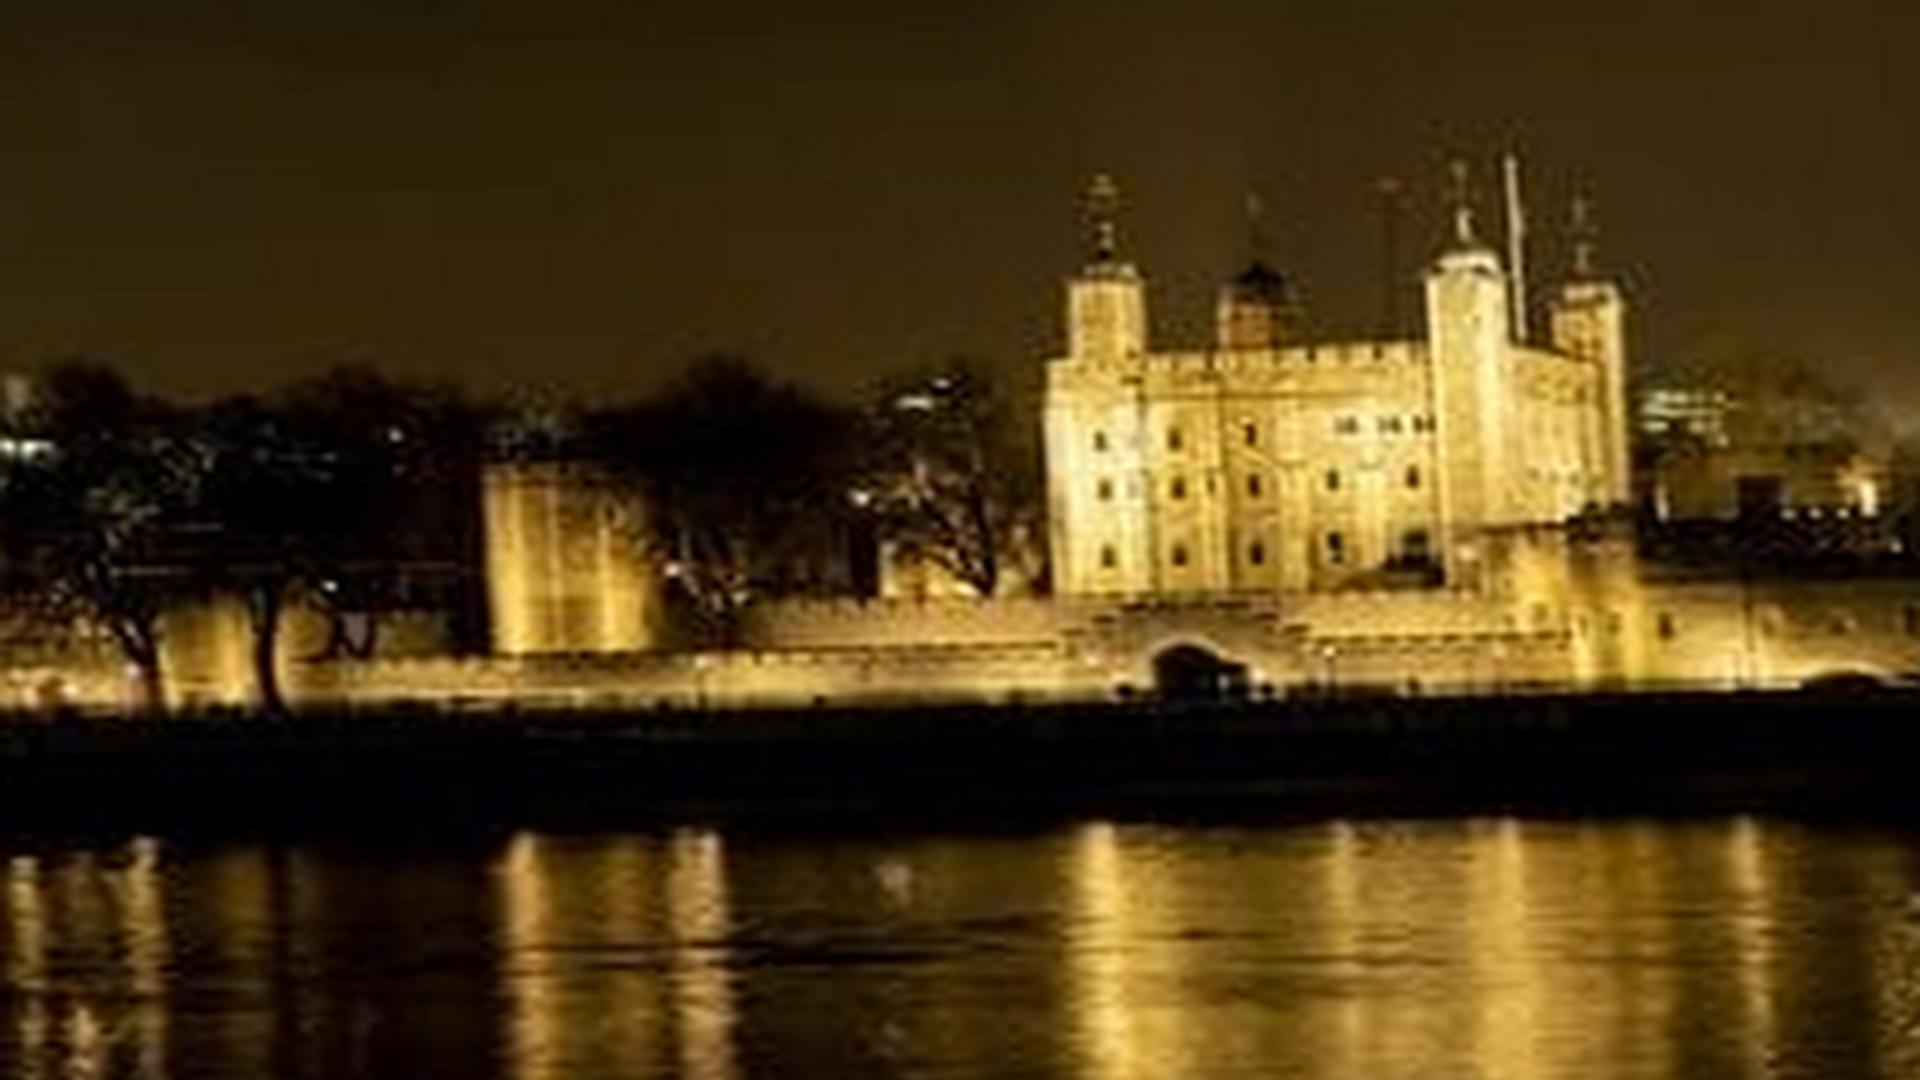 Unusal Facts About The Tower Of London